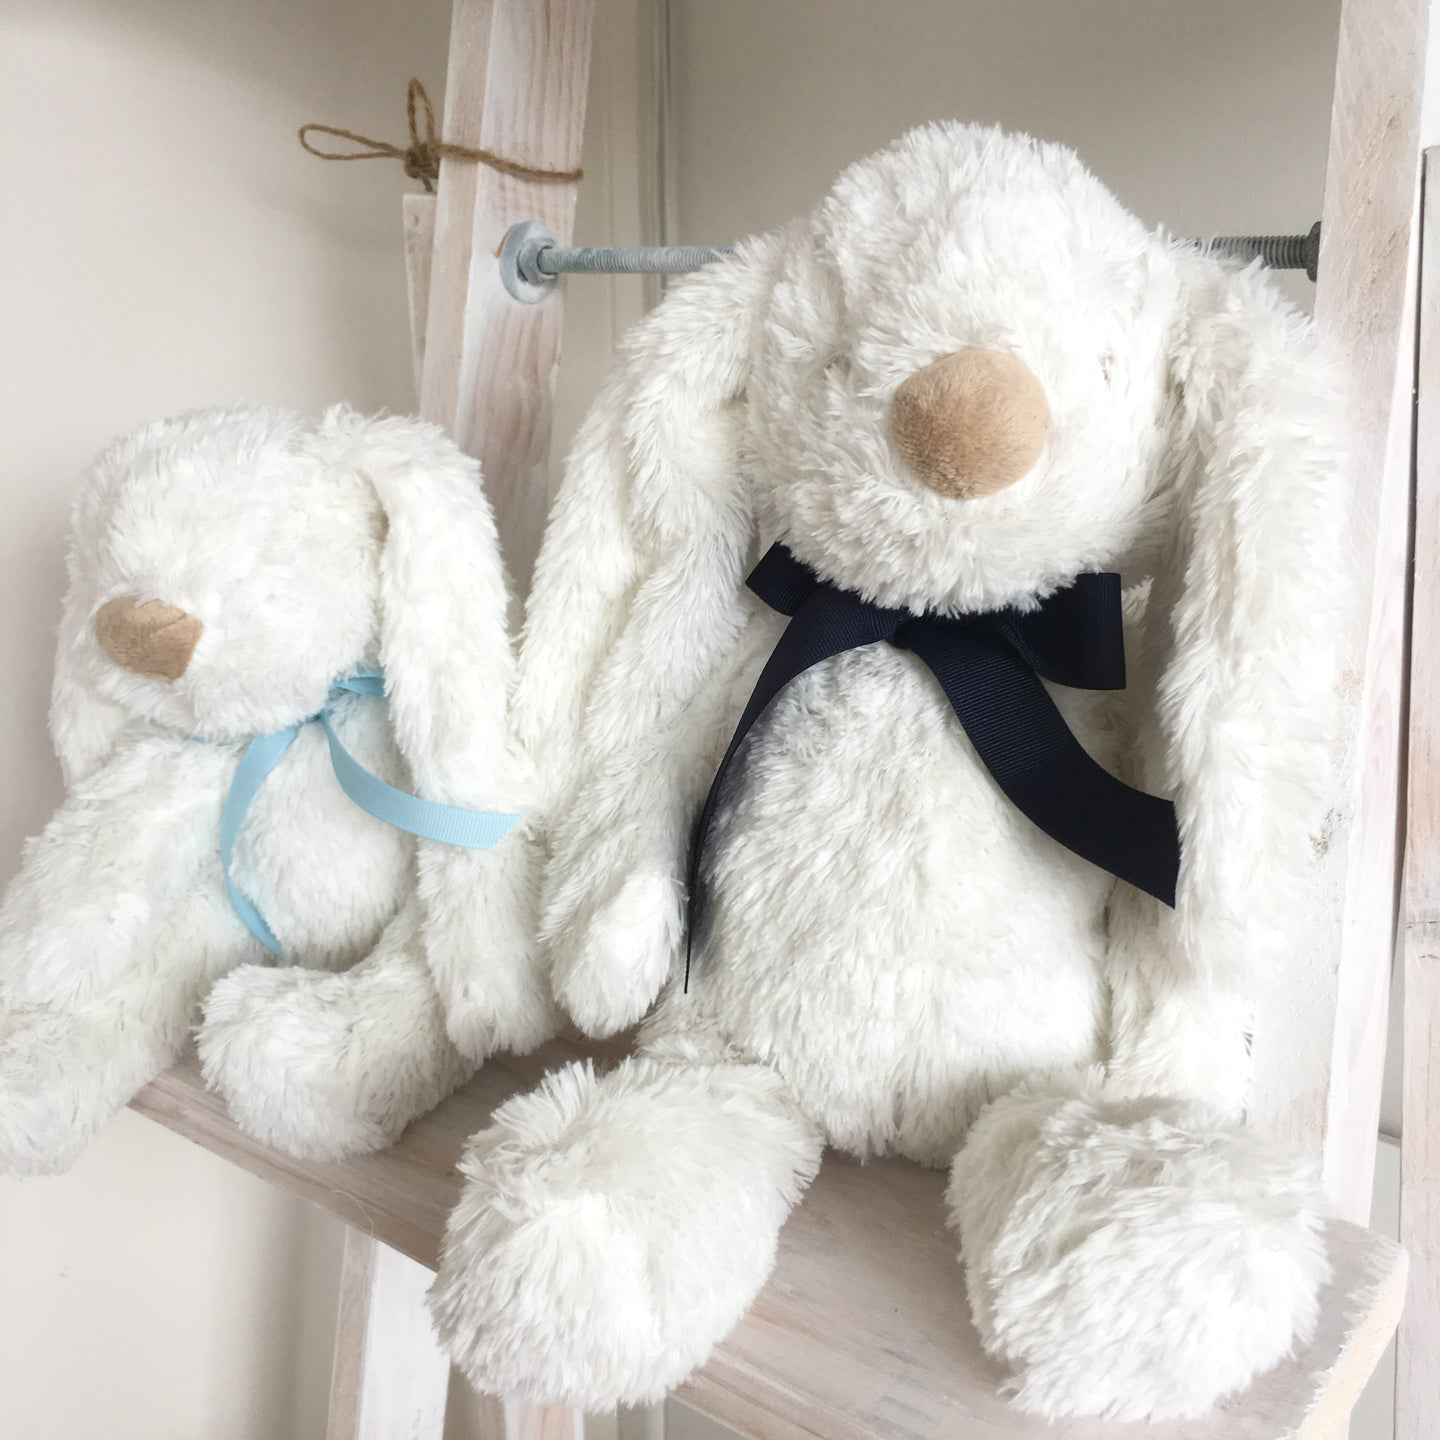 Bunny soft toy gift for kid